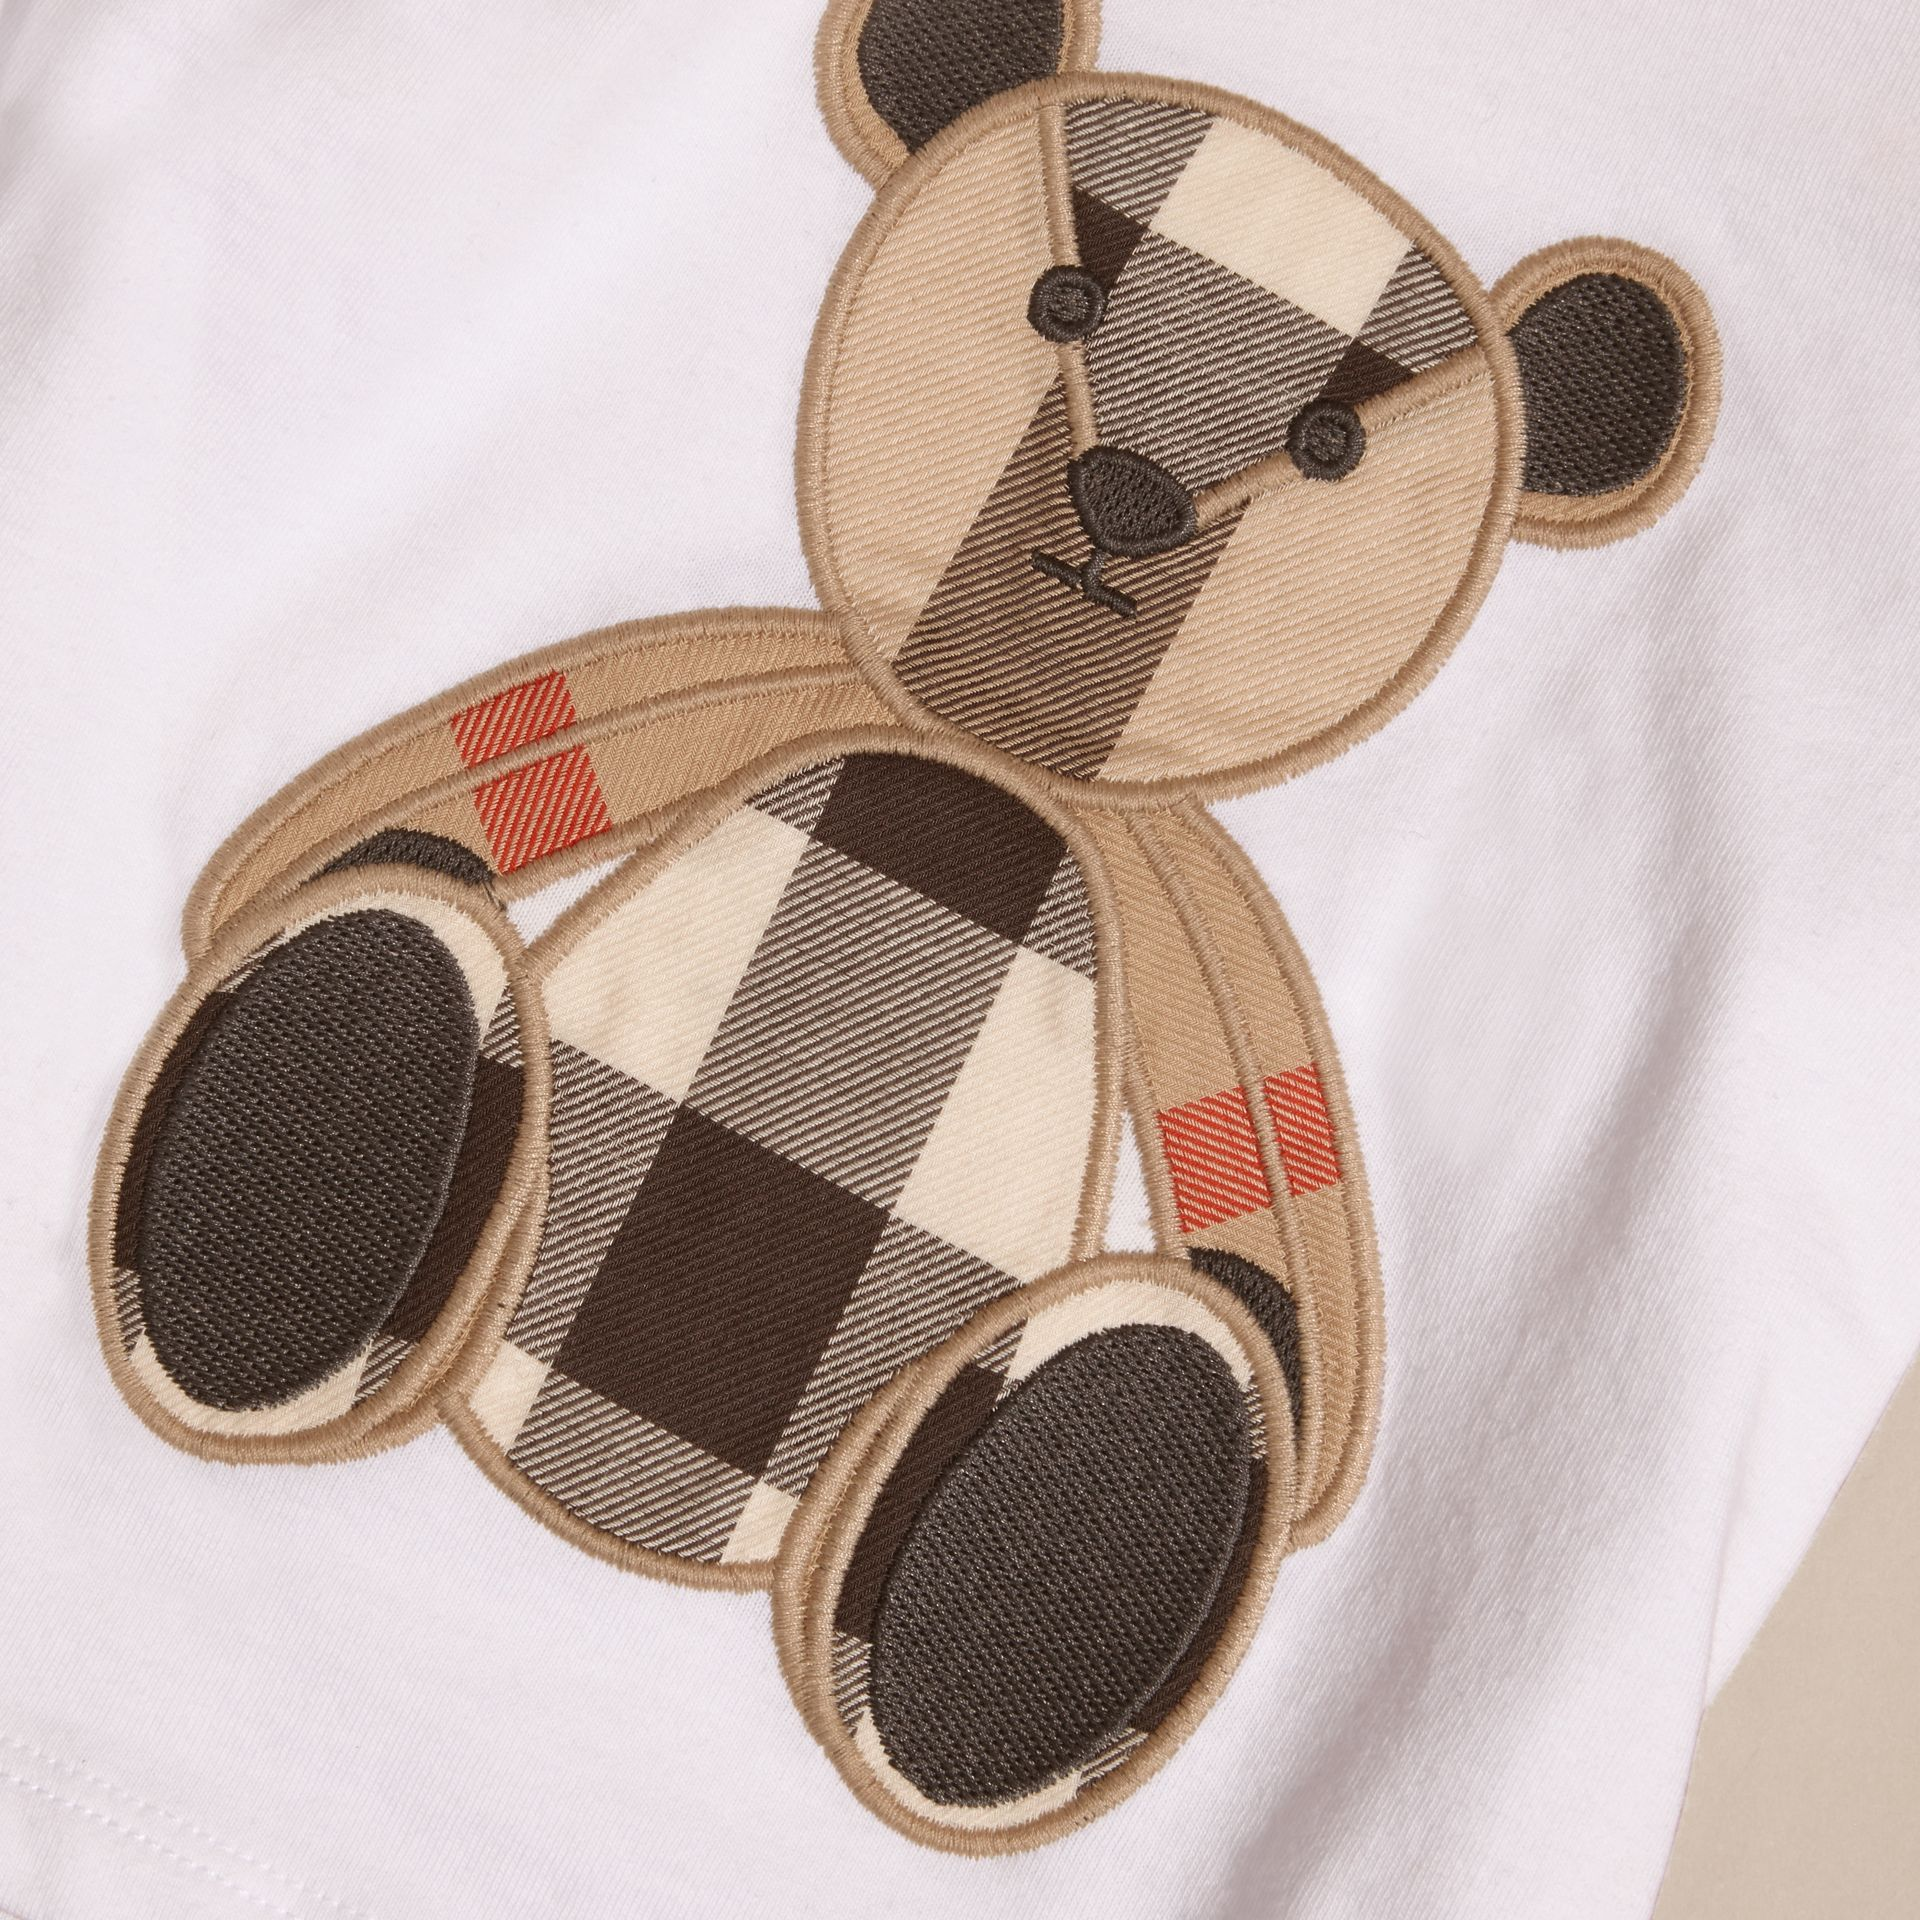 Blanc T-shirt en coton à manches longues avec motif Teddy-bear - photo de la galerie 2